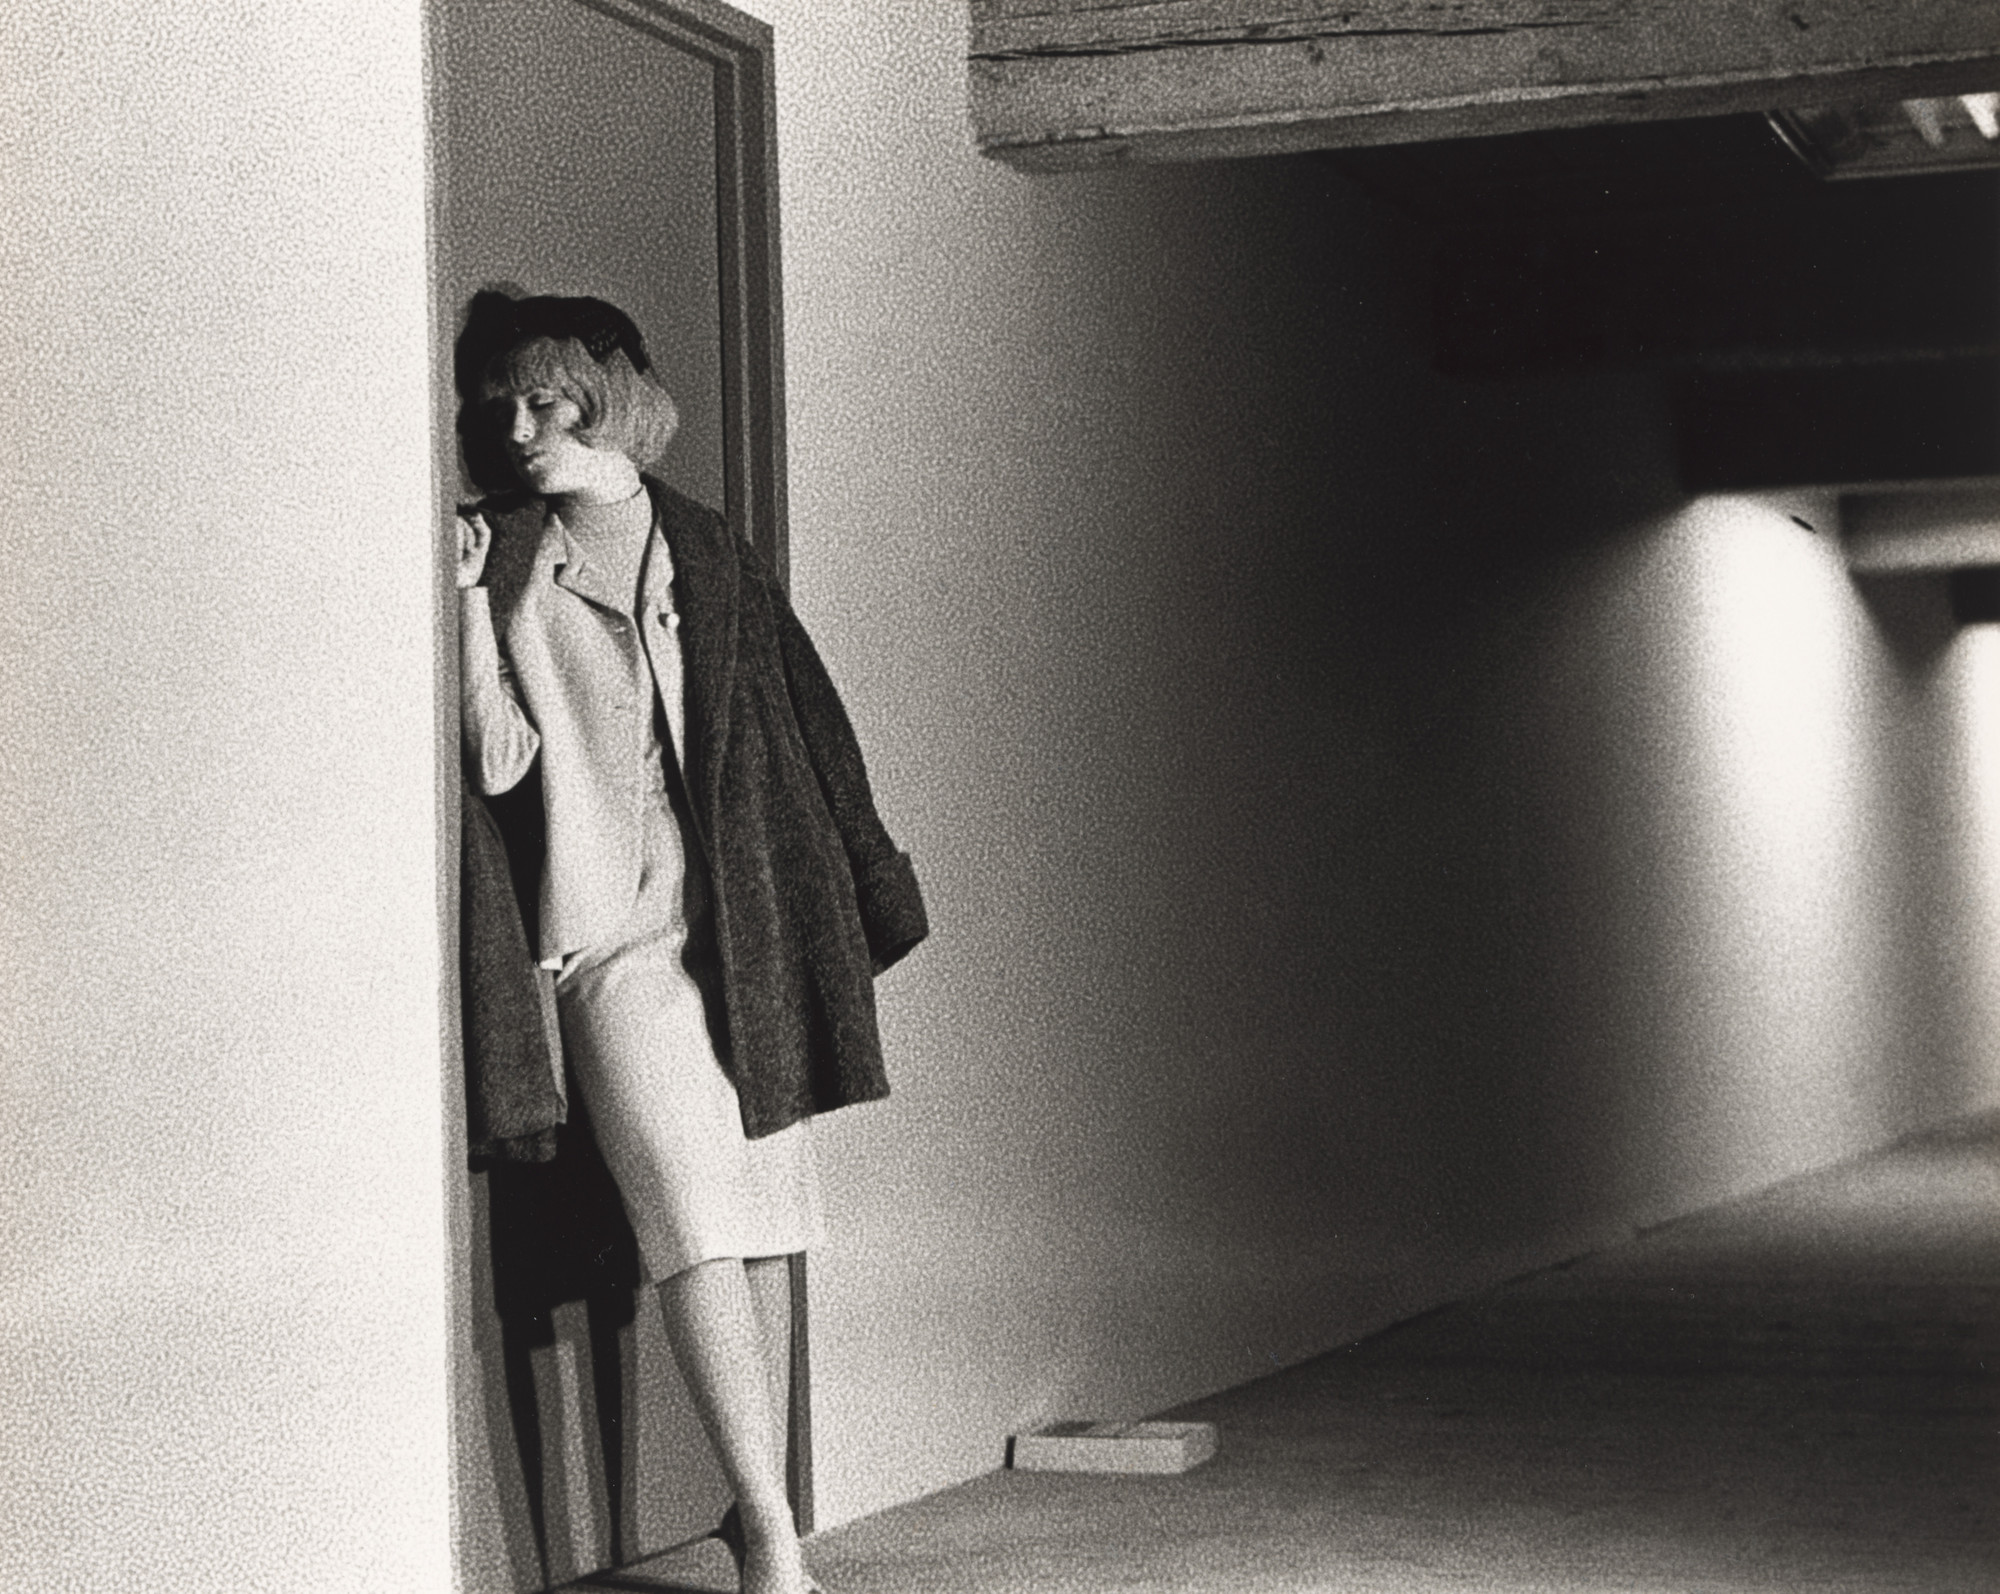 Cindy Sherman. Untitled Film Still #4. 1977